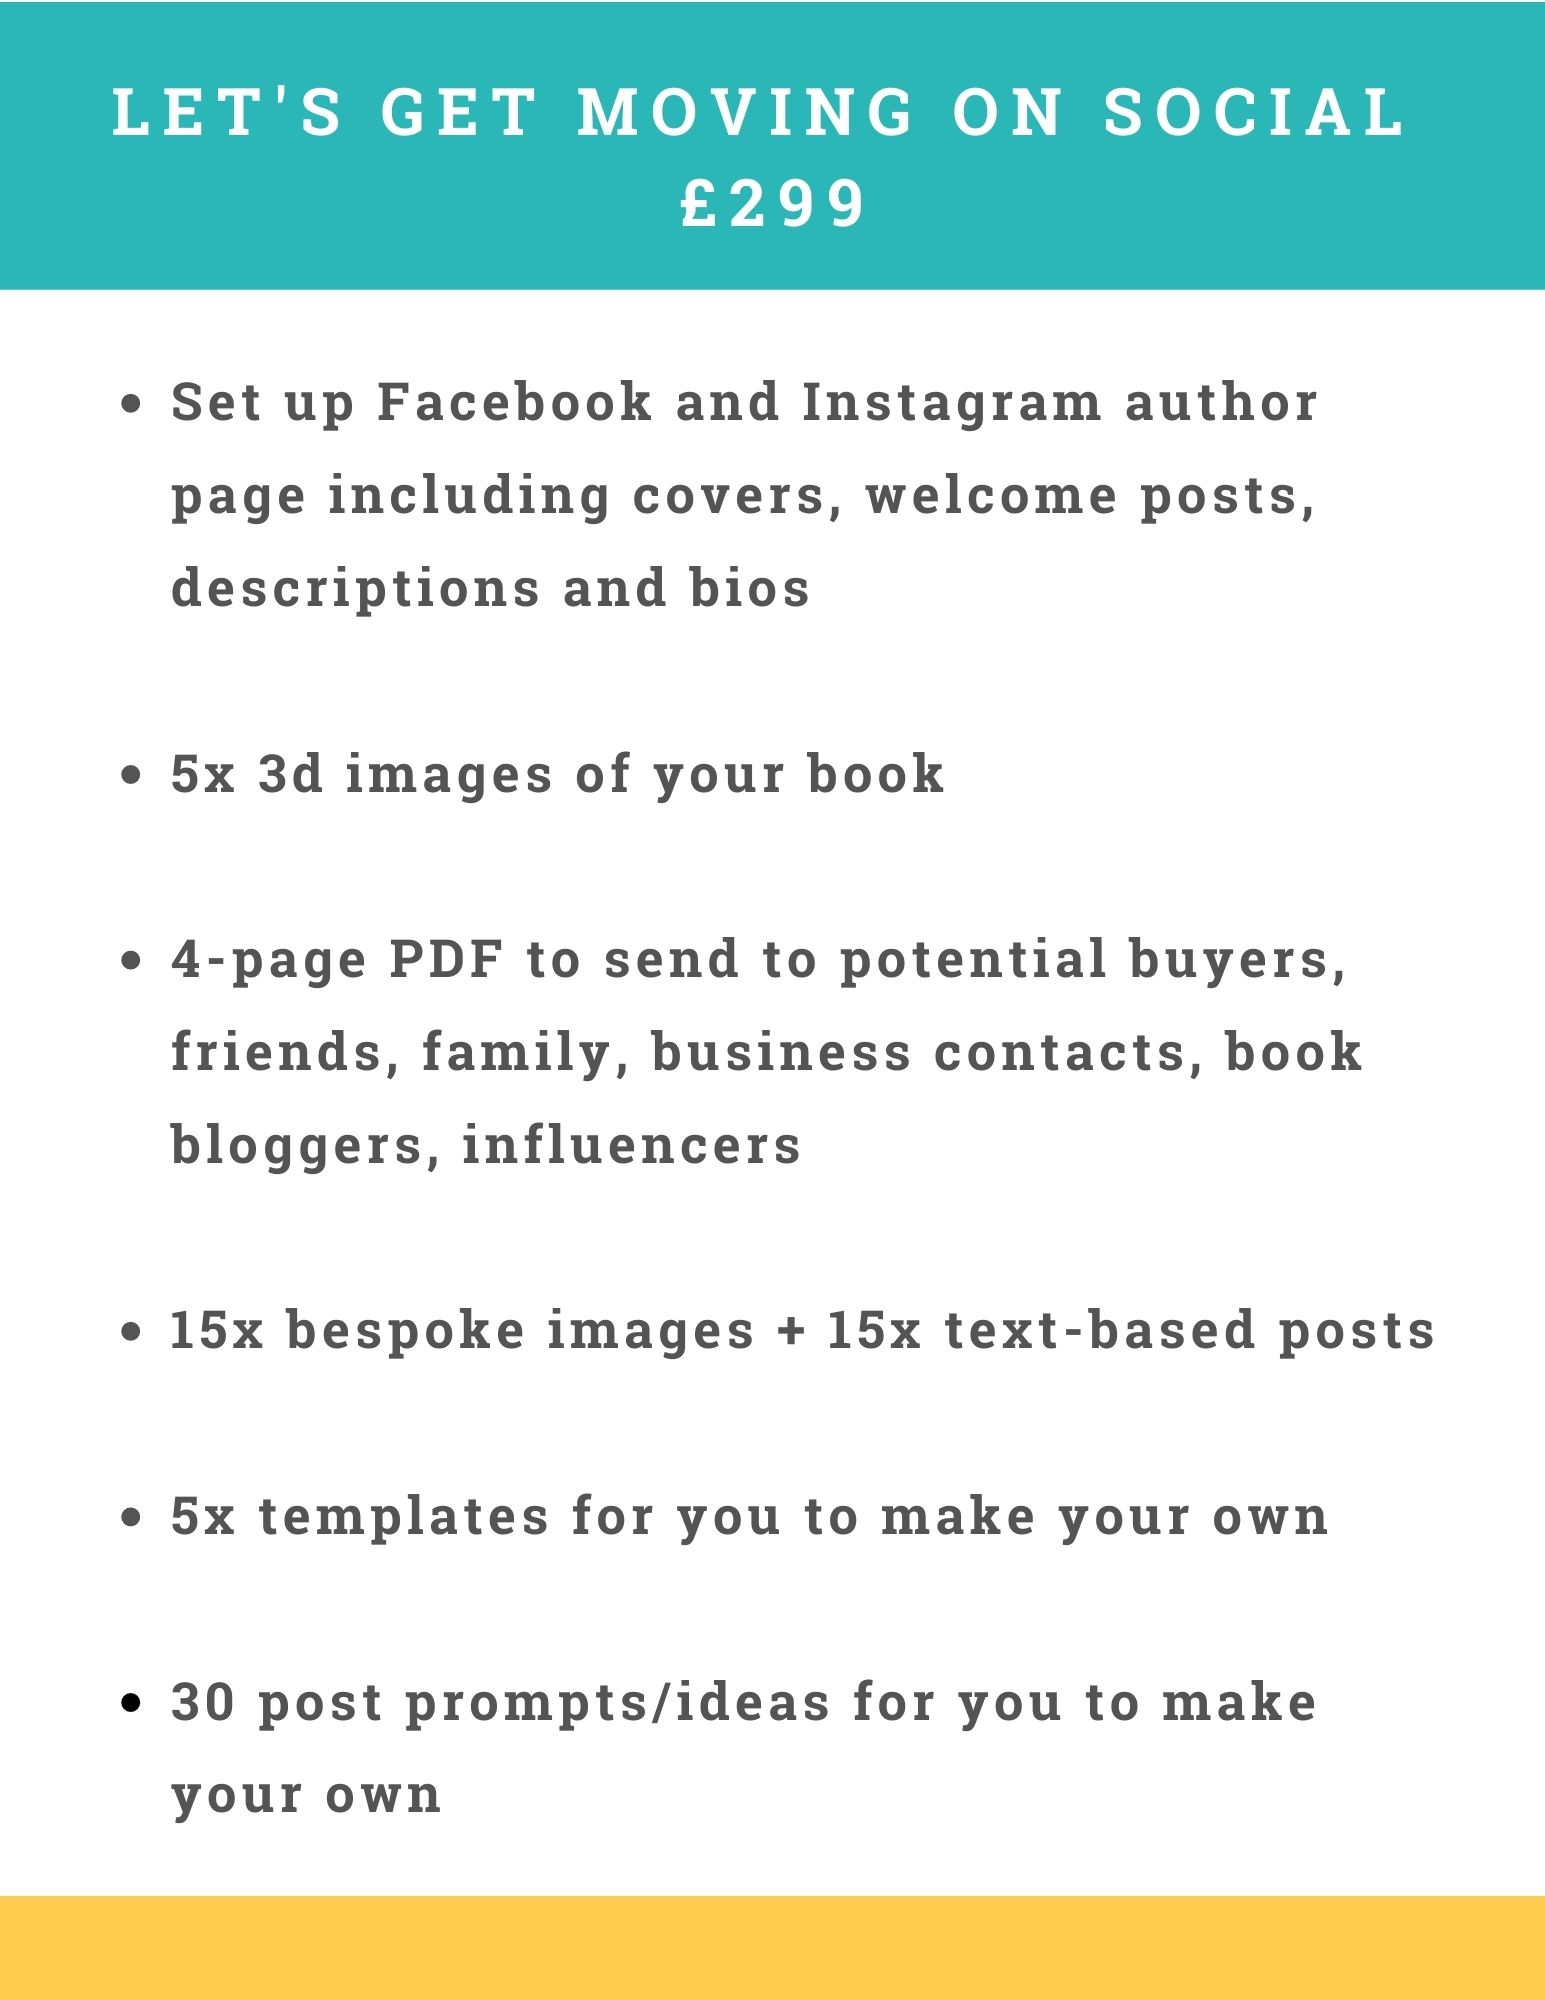 sell-your-book-michelle-emerson